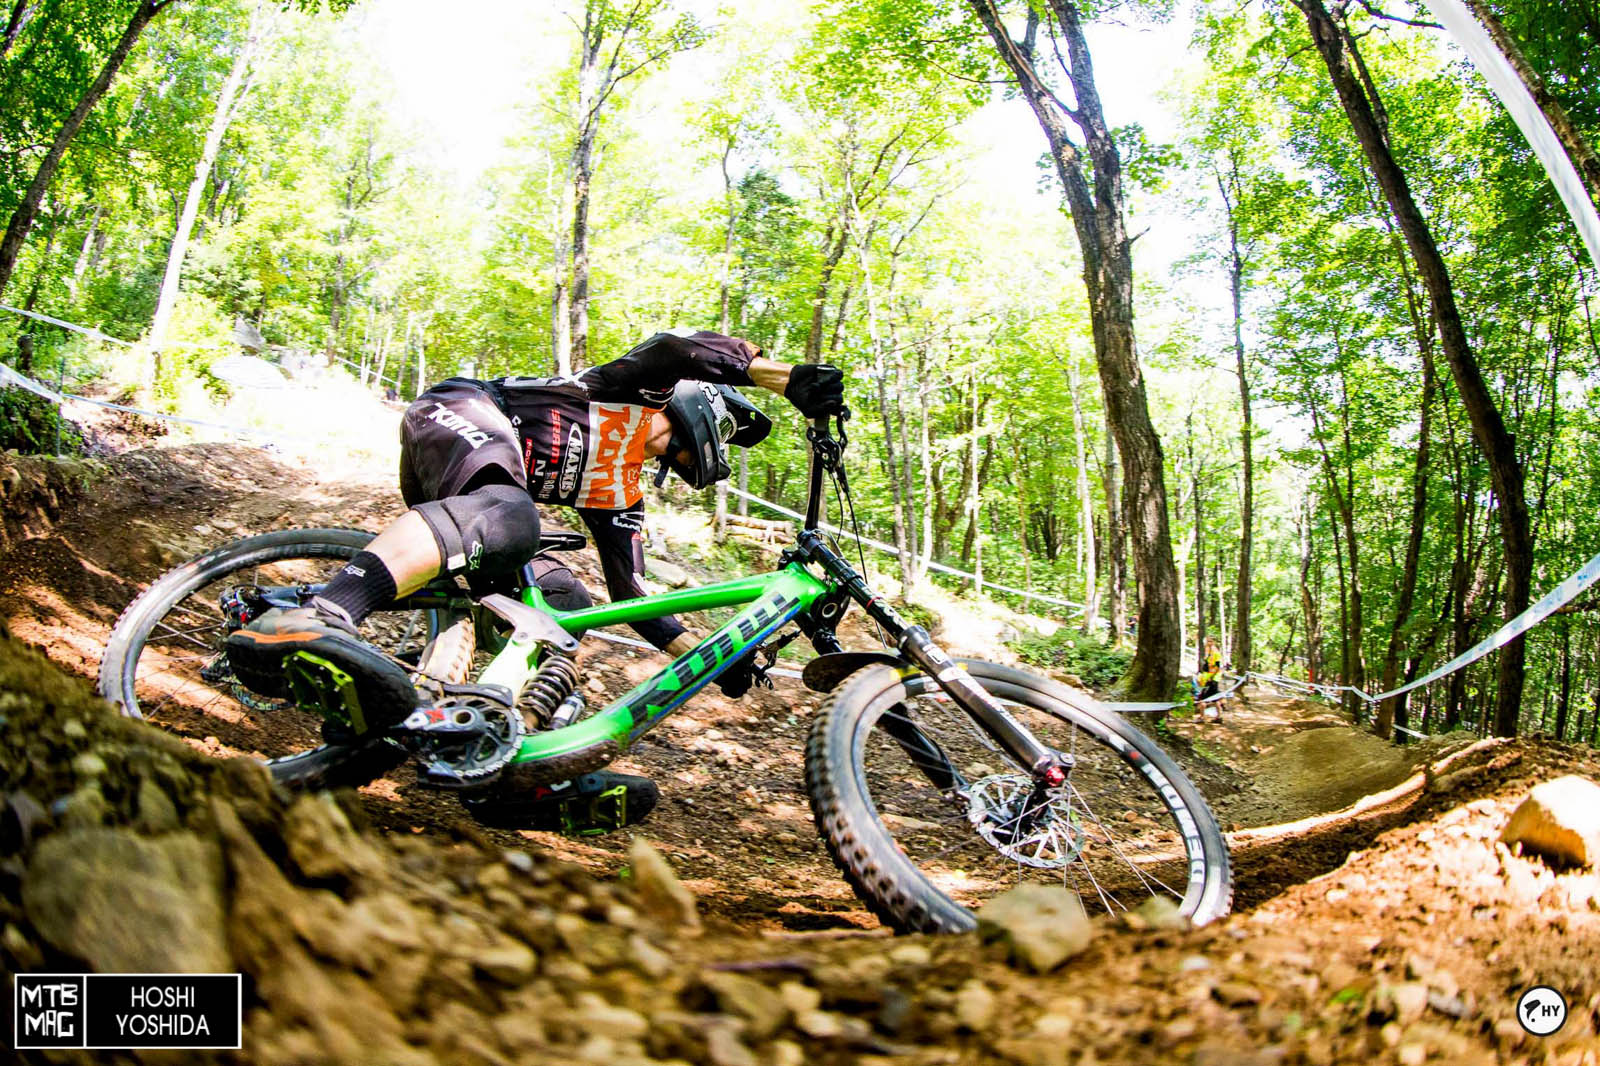 Connor Fearon deep in a turn. He always shows up to ride/film/destroy Bromont a few days ahead of MSA. We can't wait to see what he's been up to.